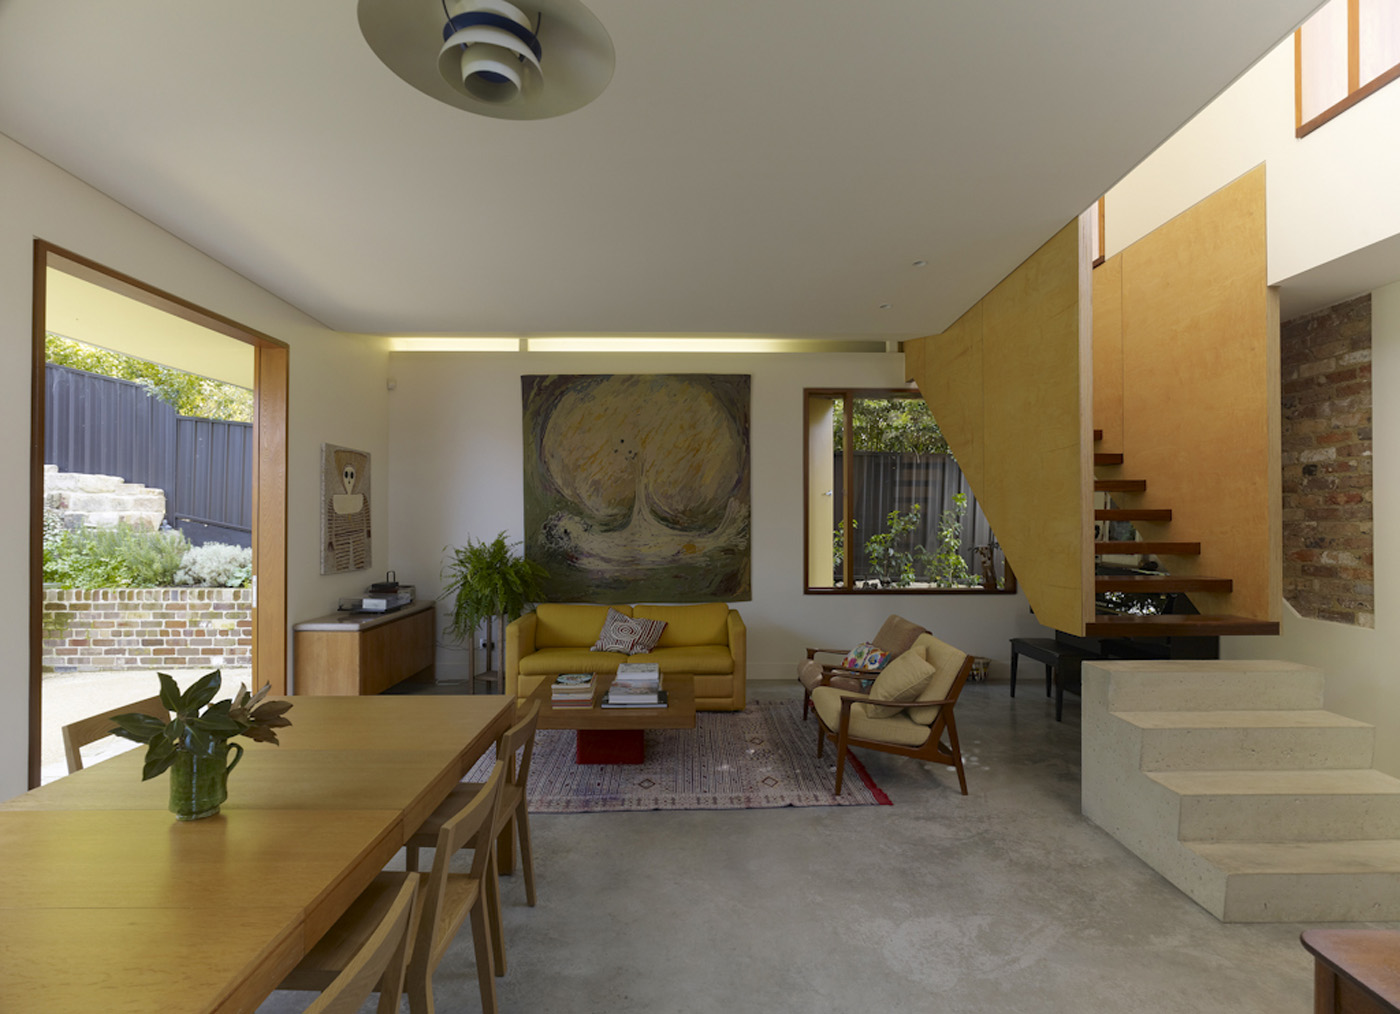 Campbell House by award winning Sydney residential architecture firm Sam Crawford Architects. View to open living area with concrete, brick and timber as main material palette.